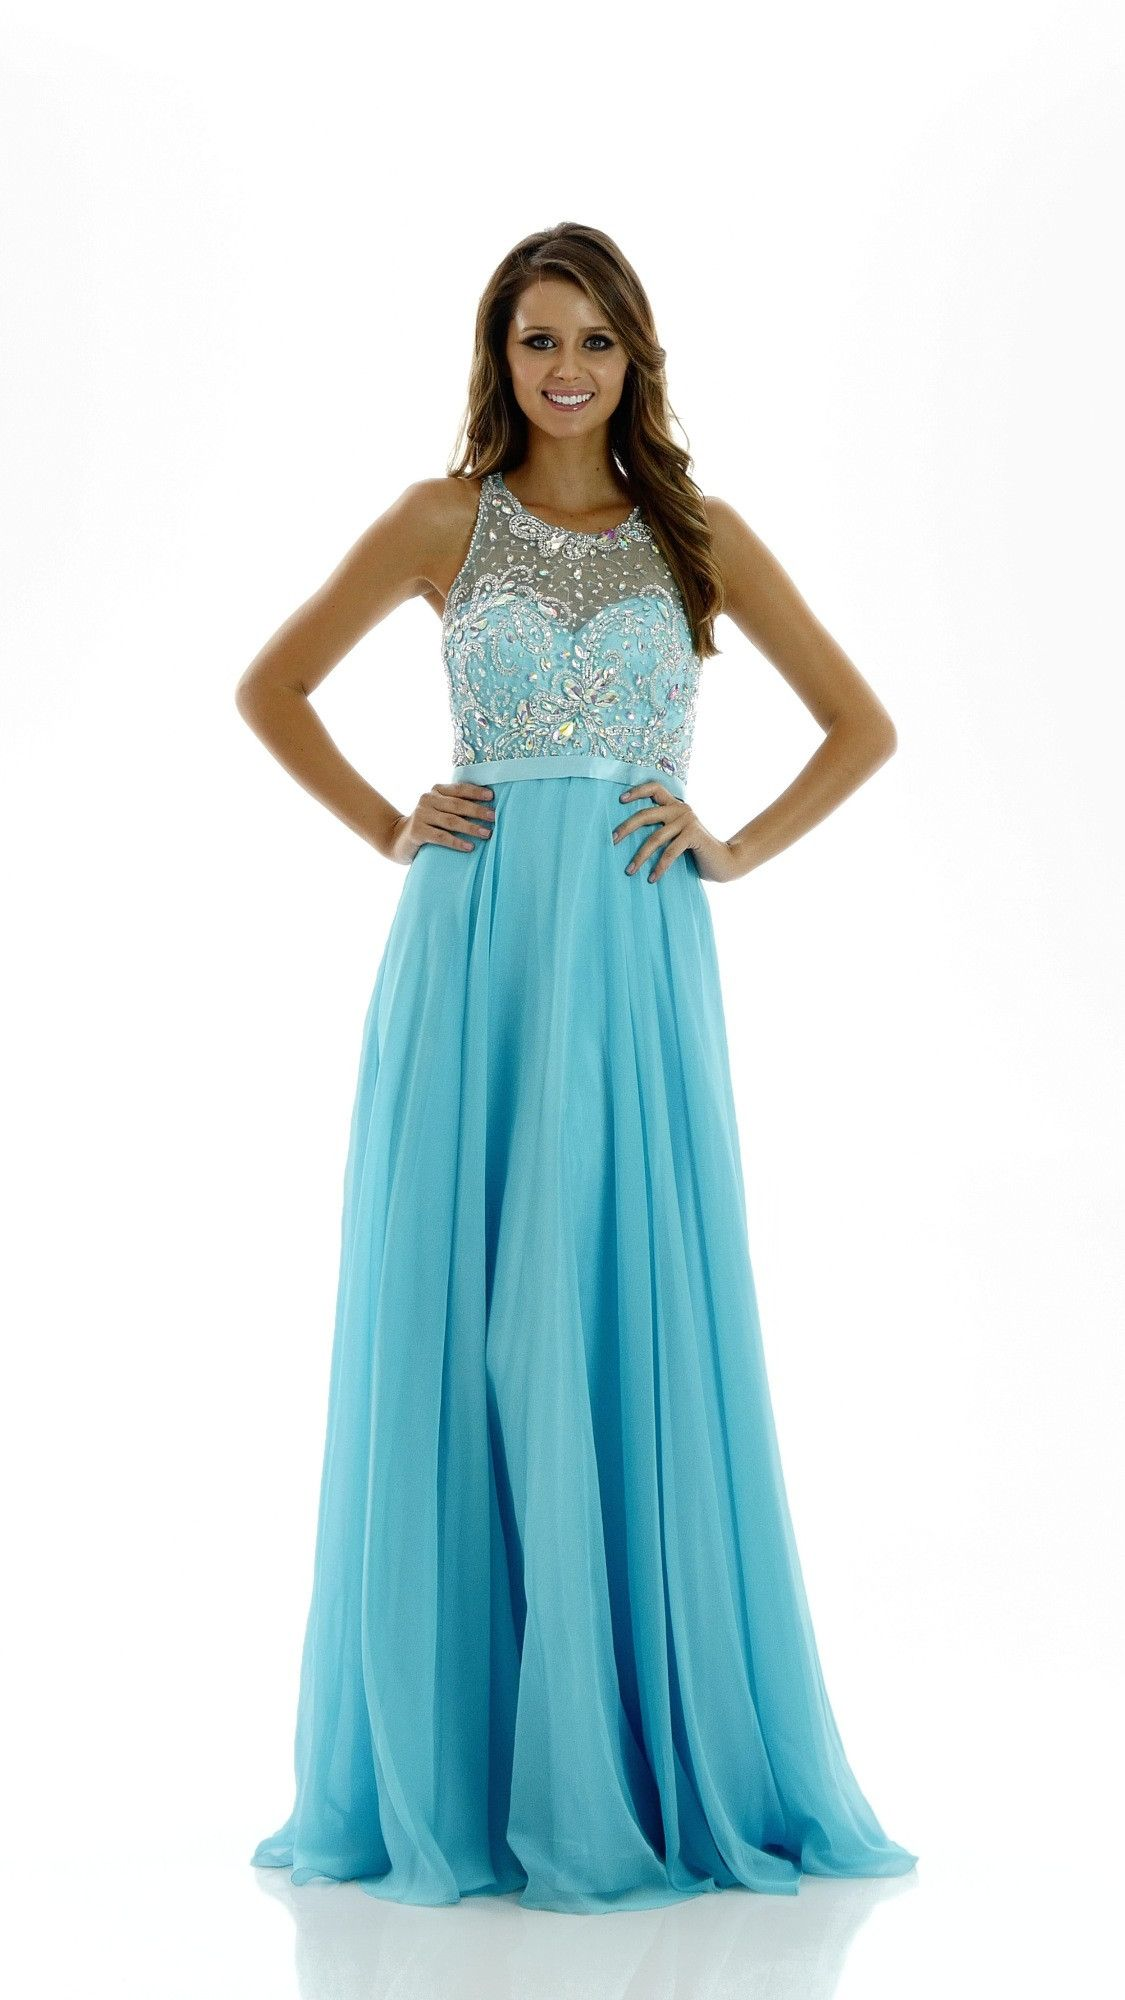 Illusion Halter Top Chiffon A-line Evening Gown with Sheer Back ...